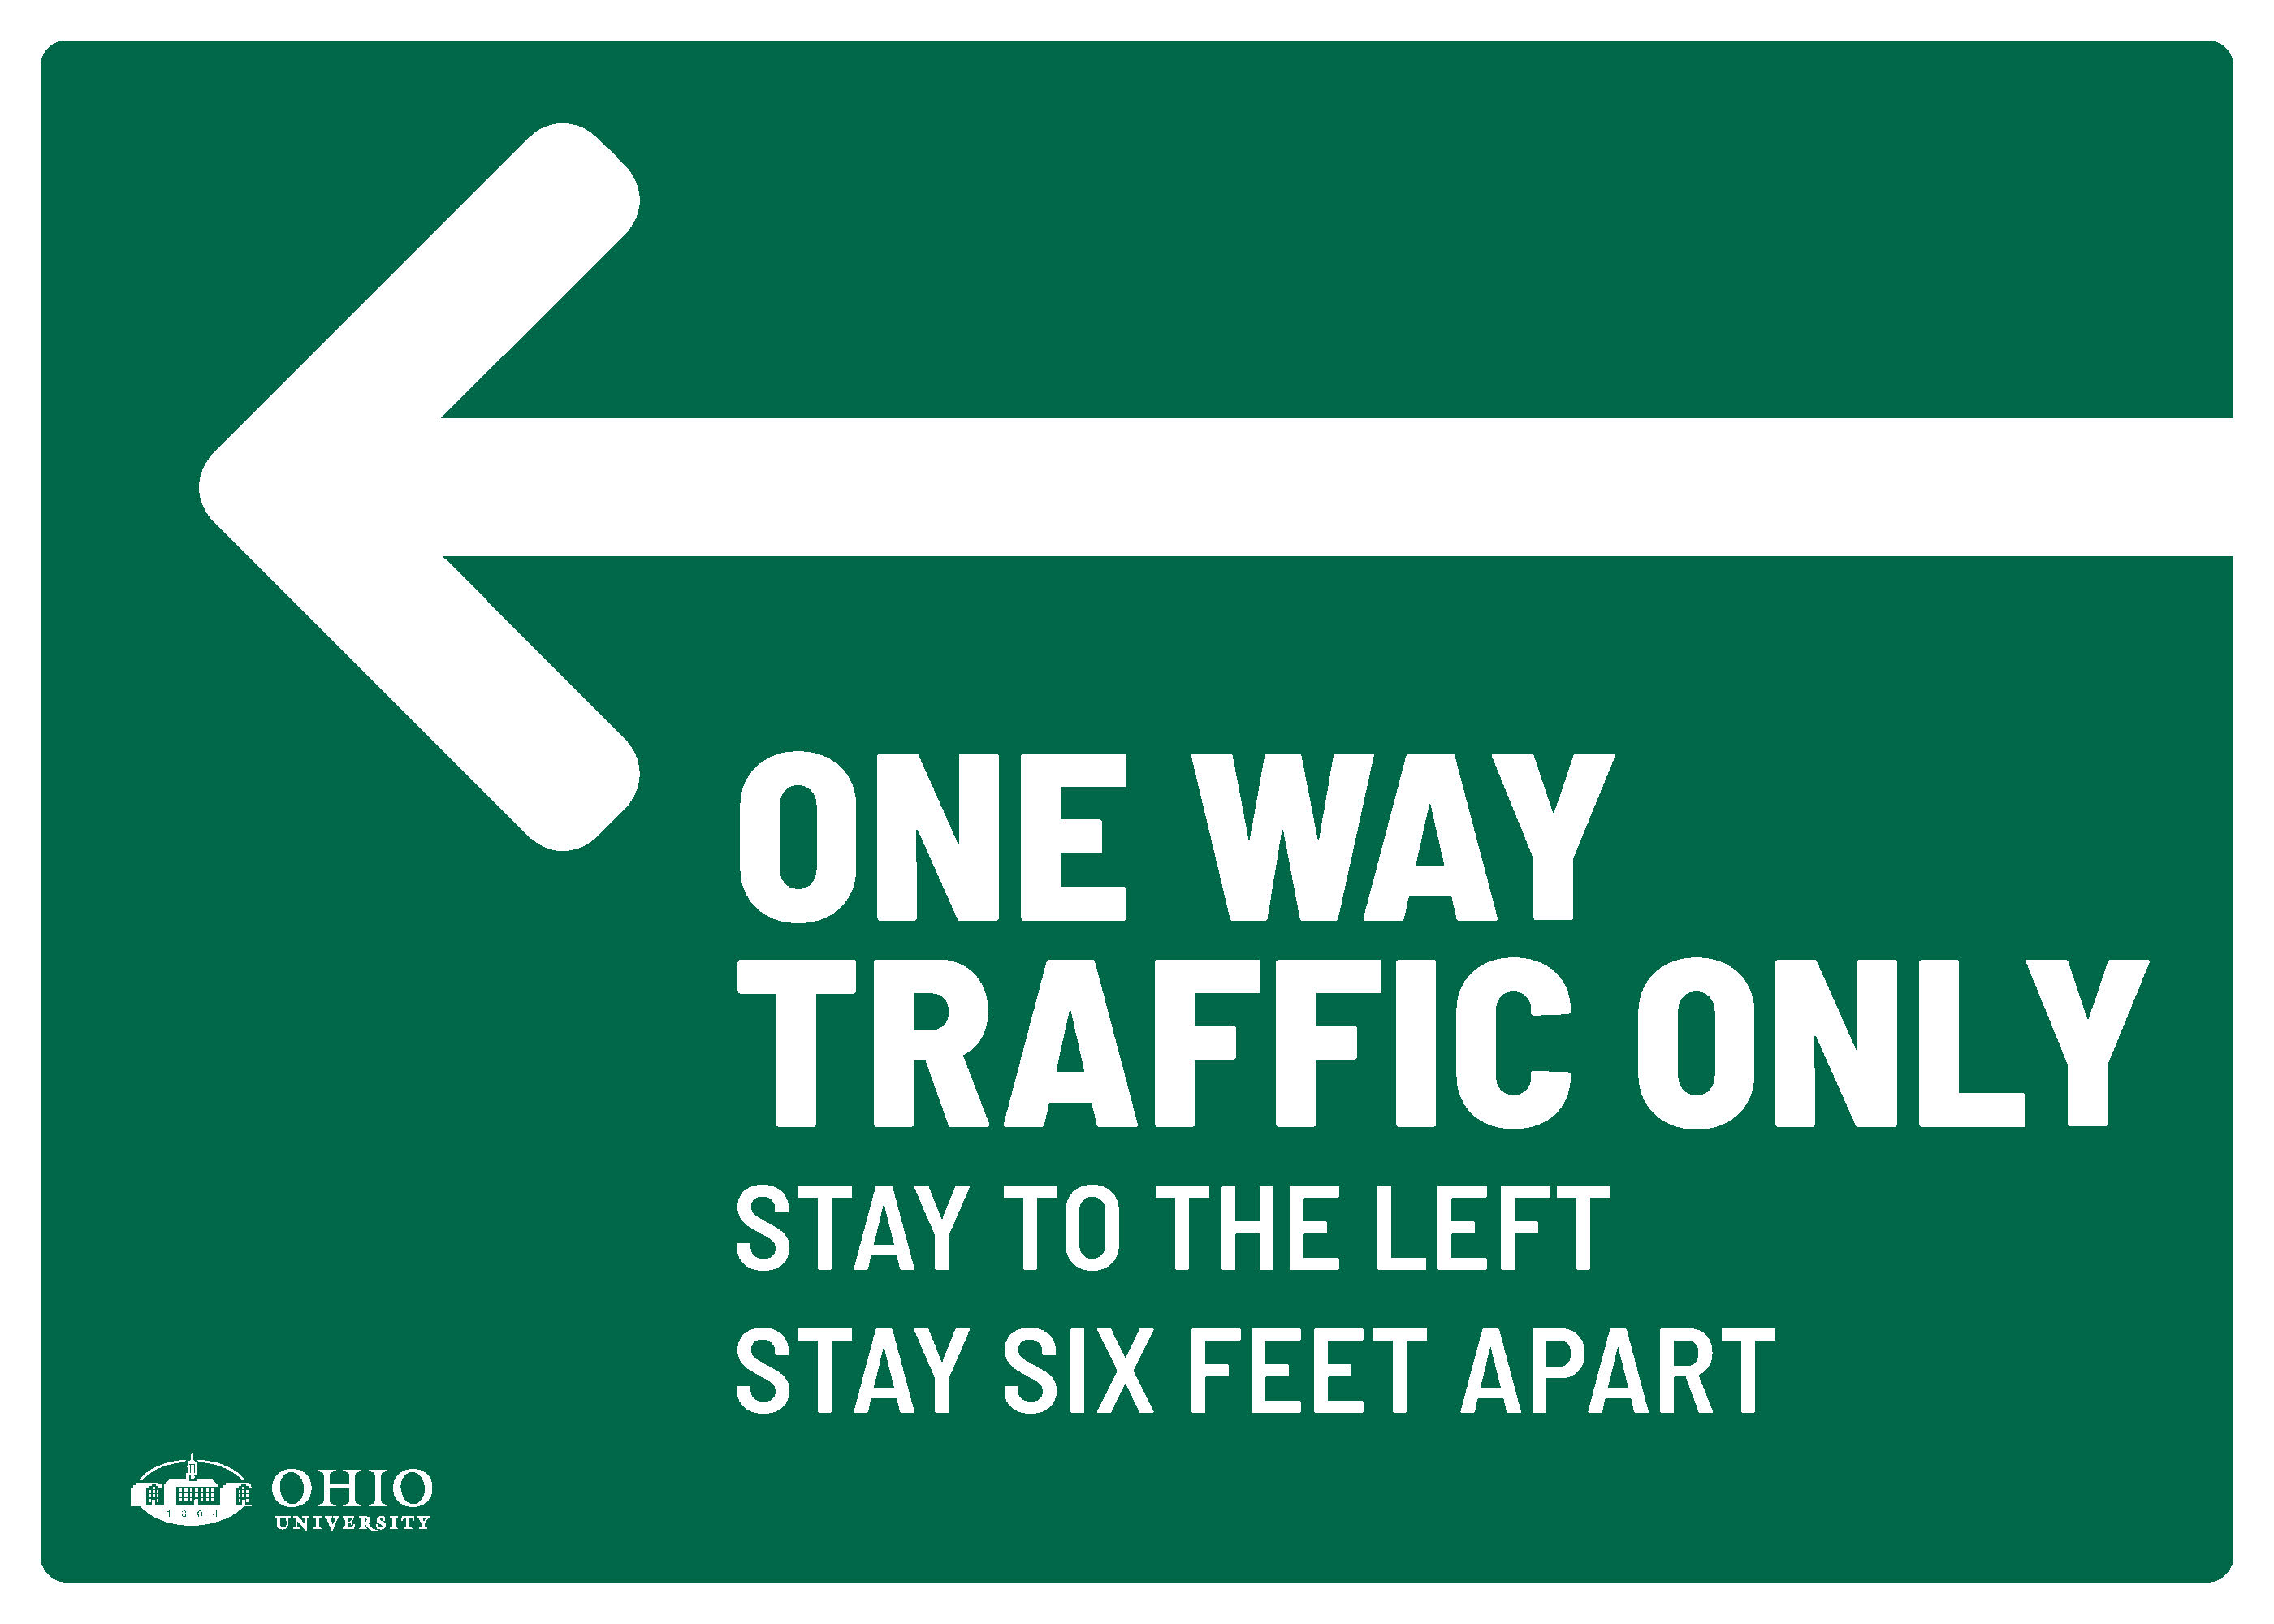 Sign that says: Left. One way traffic only. Stay to the left. Stay six feet apart.